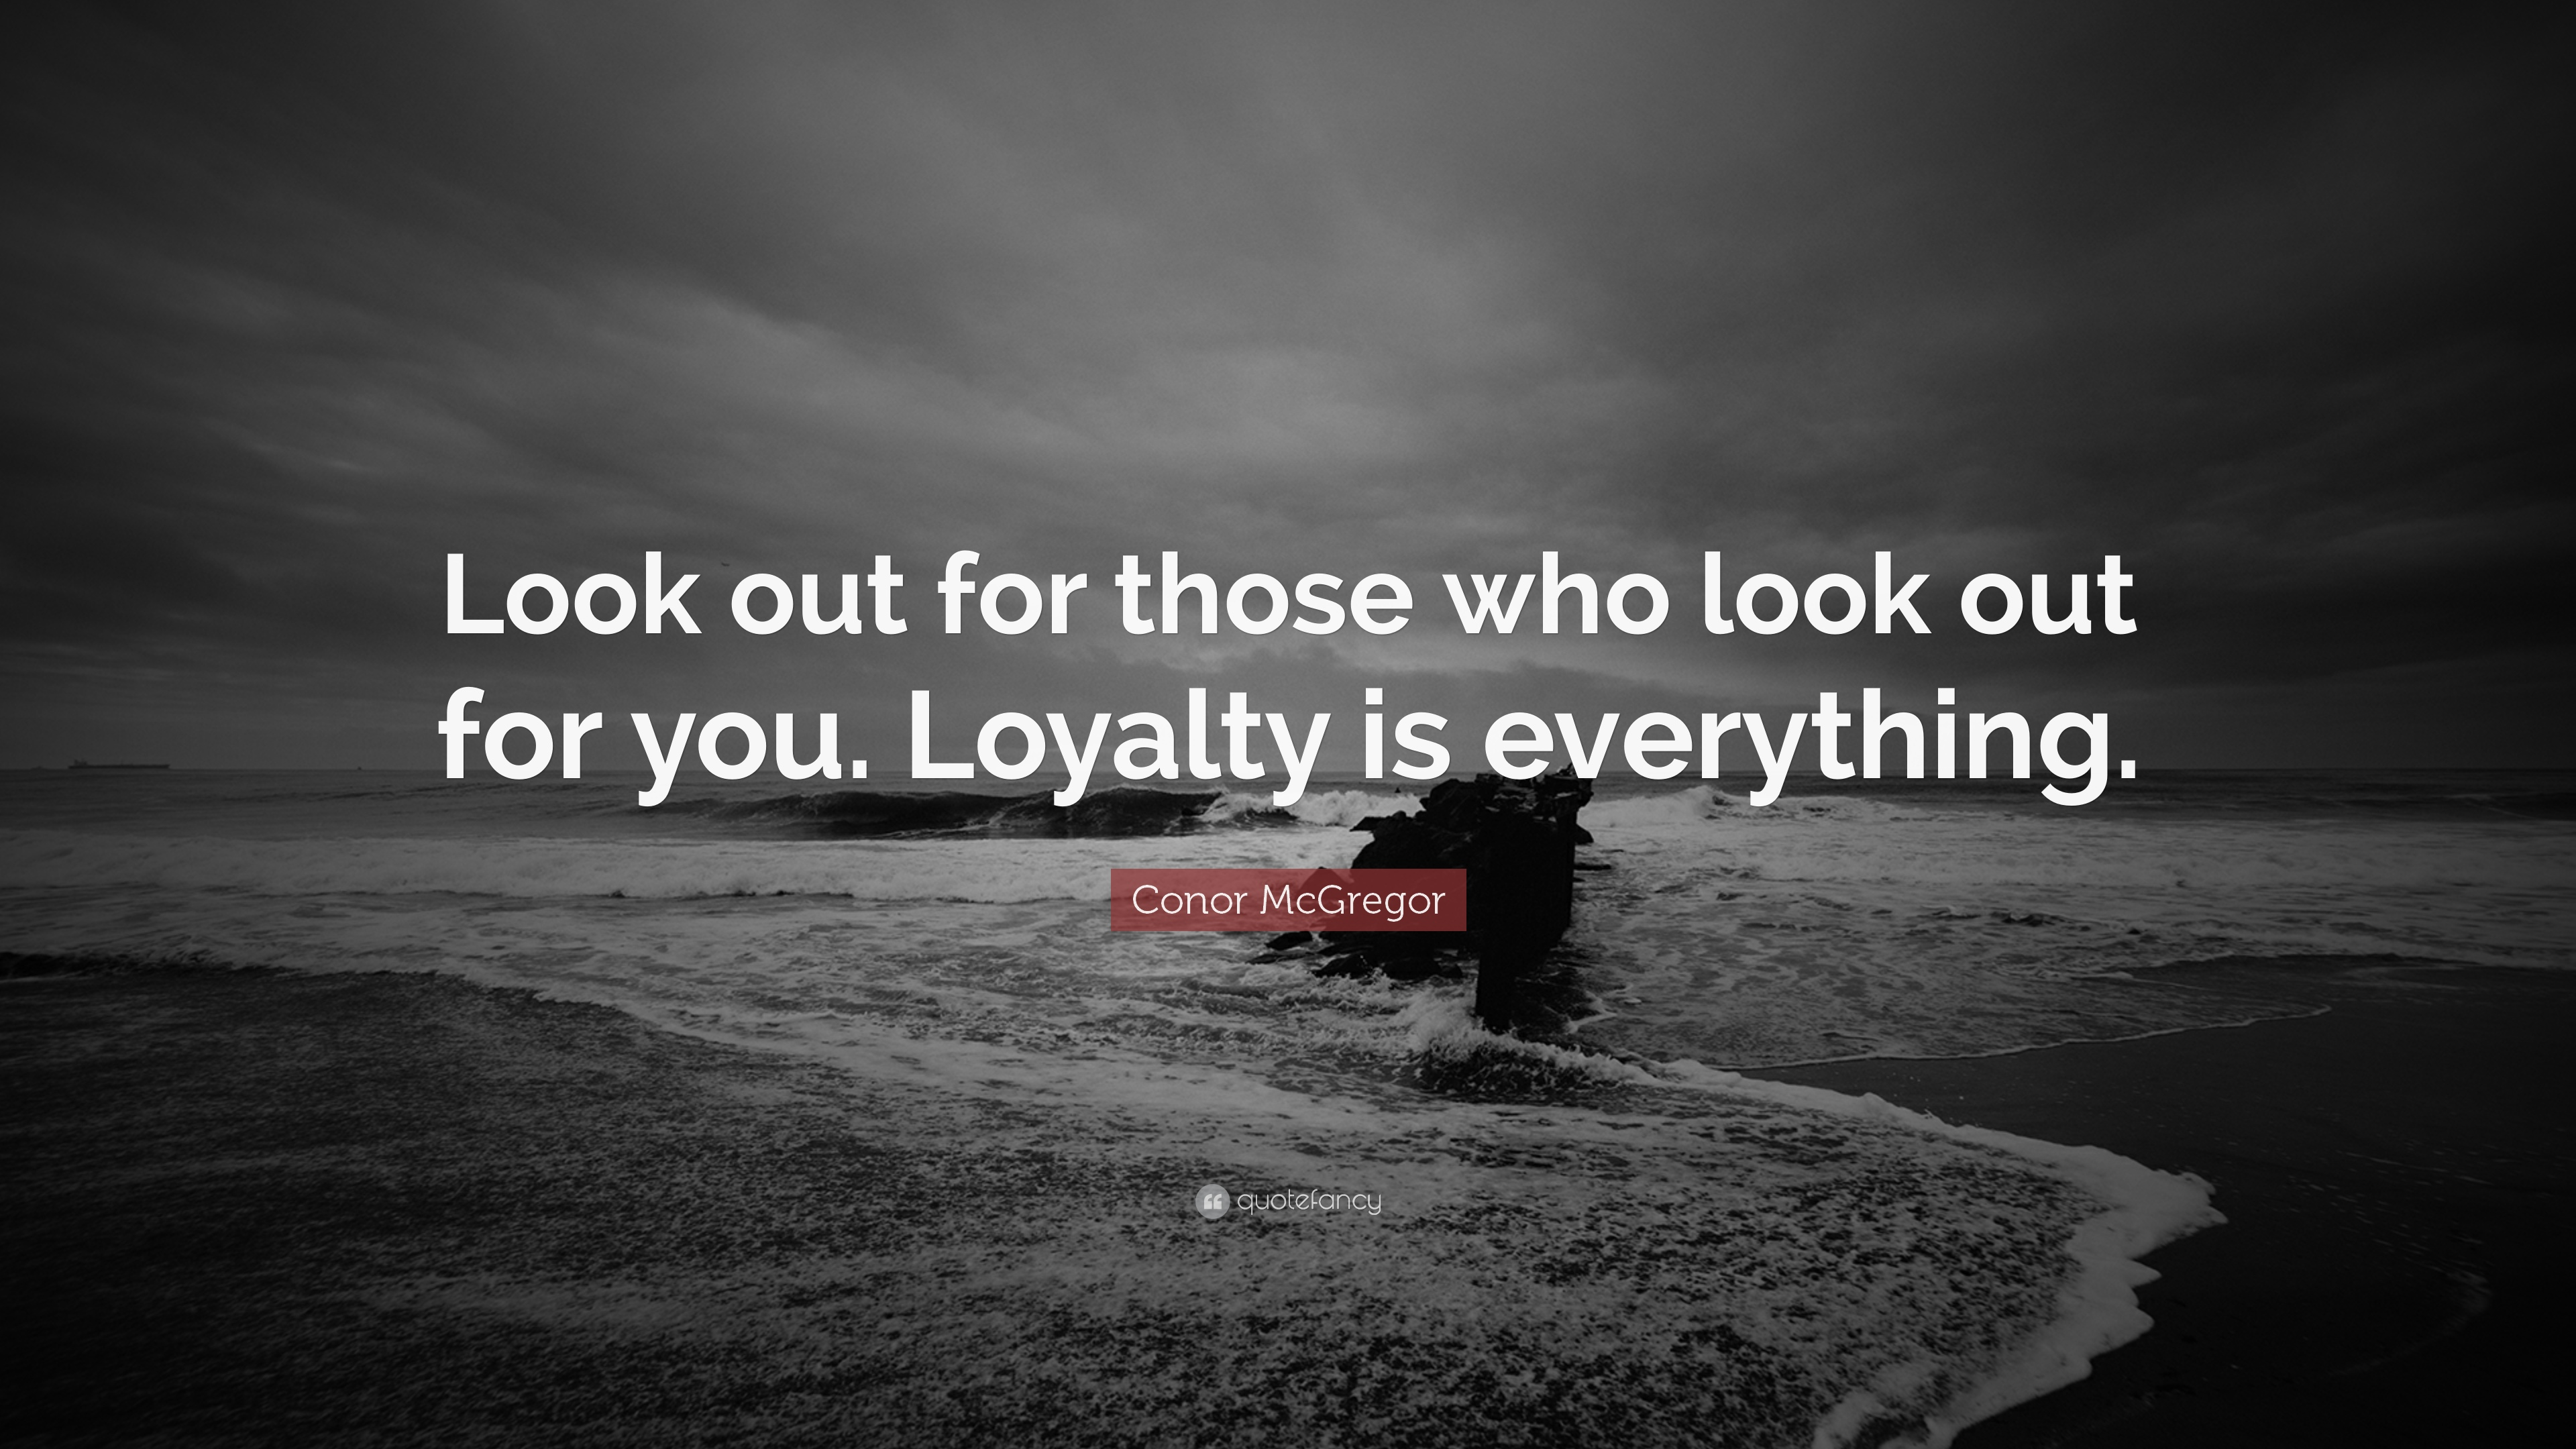 Loyalty Quotes: U201cLook Out For Those Who Look Out For You. Loyalty Is